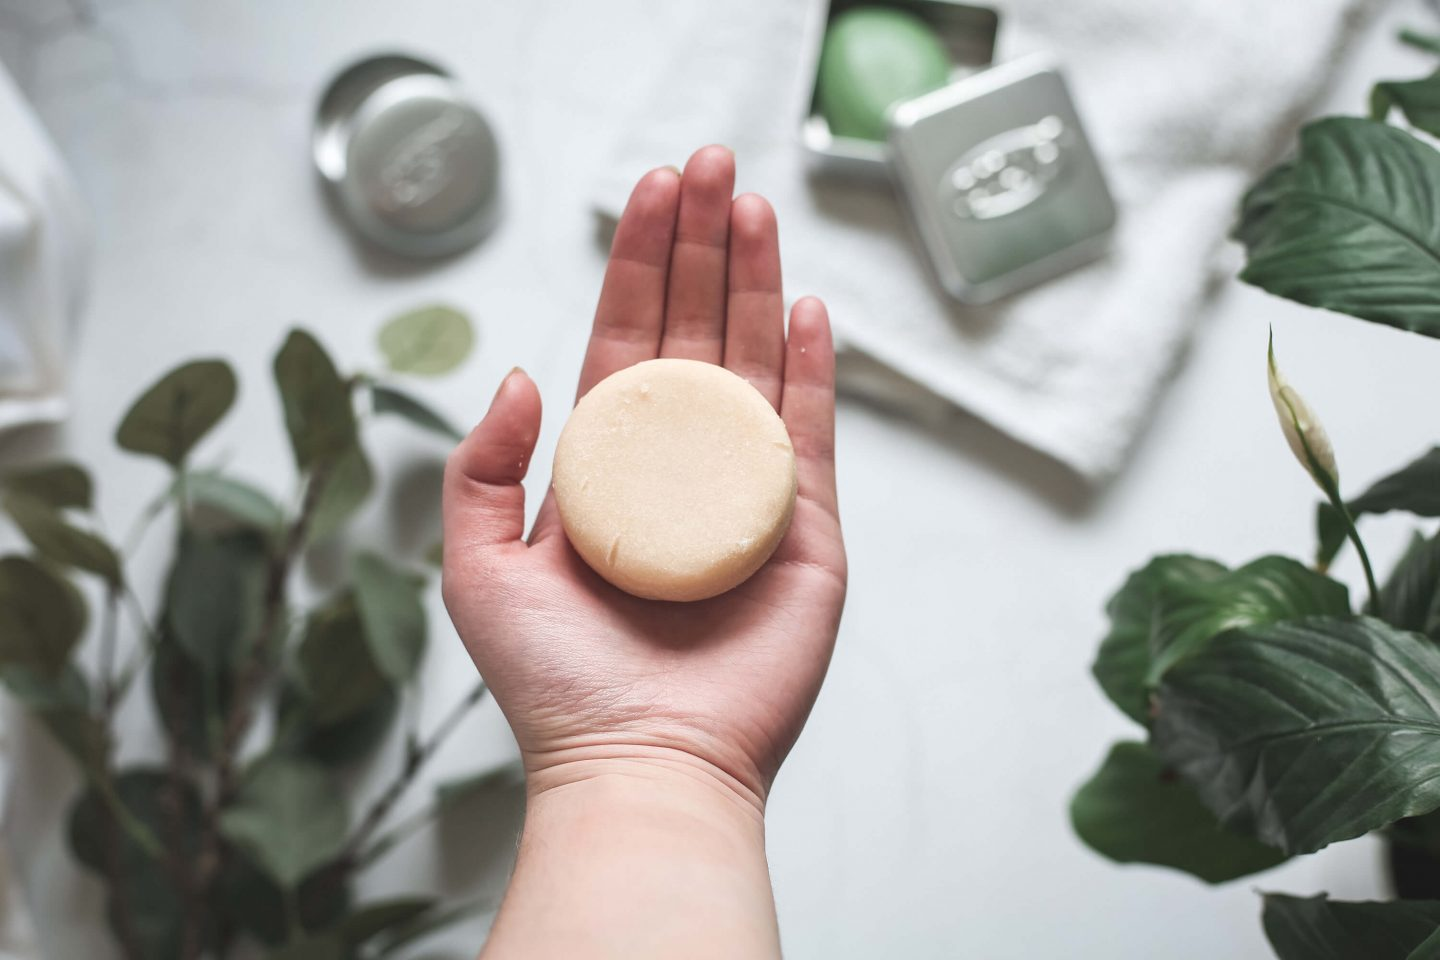 Lush Shampoo Bar Review | Packaging Free Products